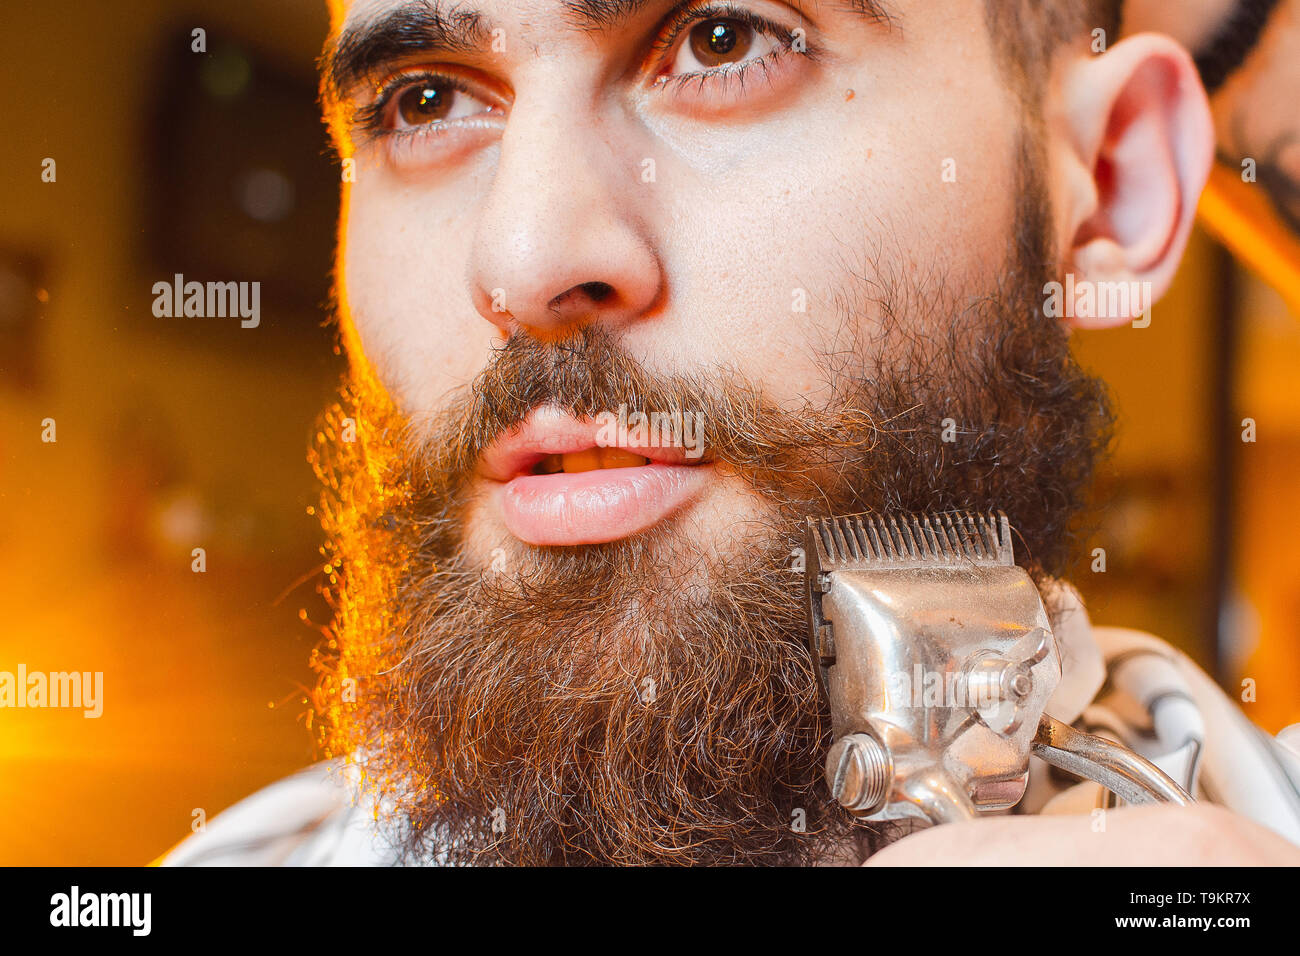 Barber cuts a beard of vintage hair clippers to a young handsome guy with a beard and mustache. Men's hair salon. - Stock Image